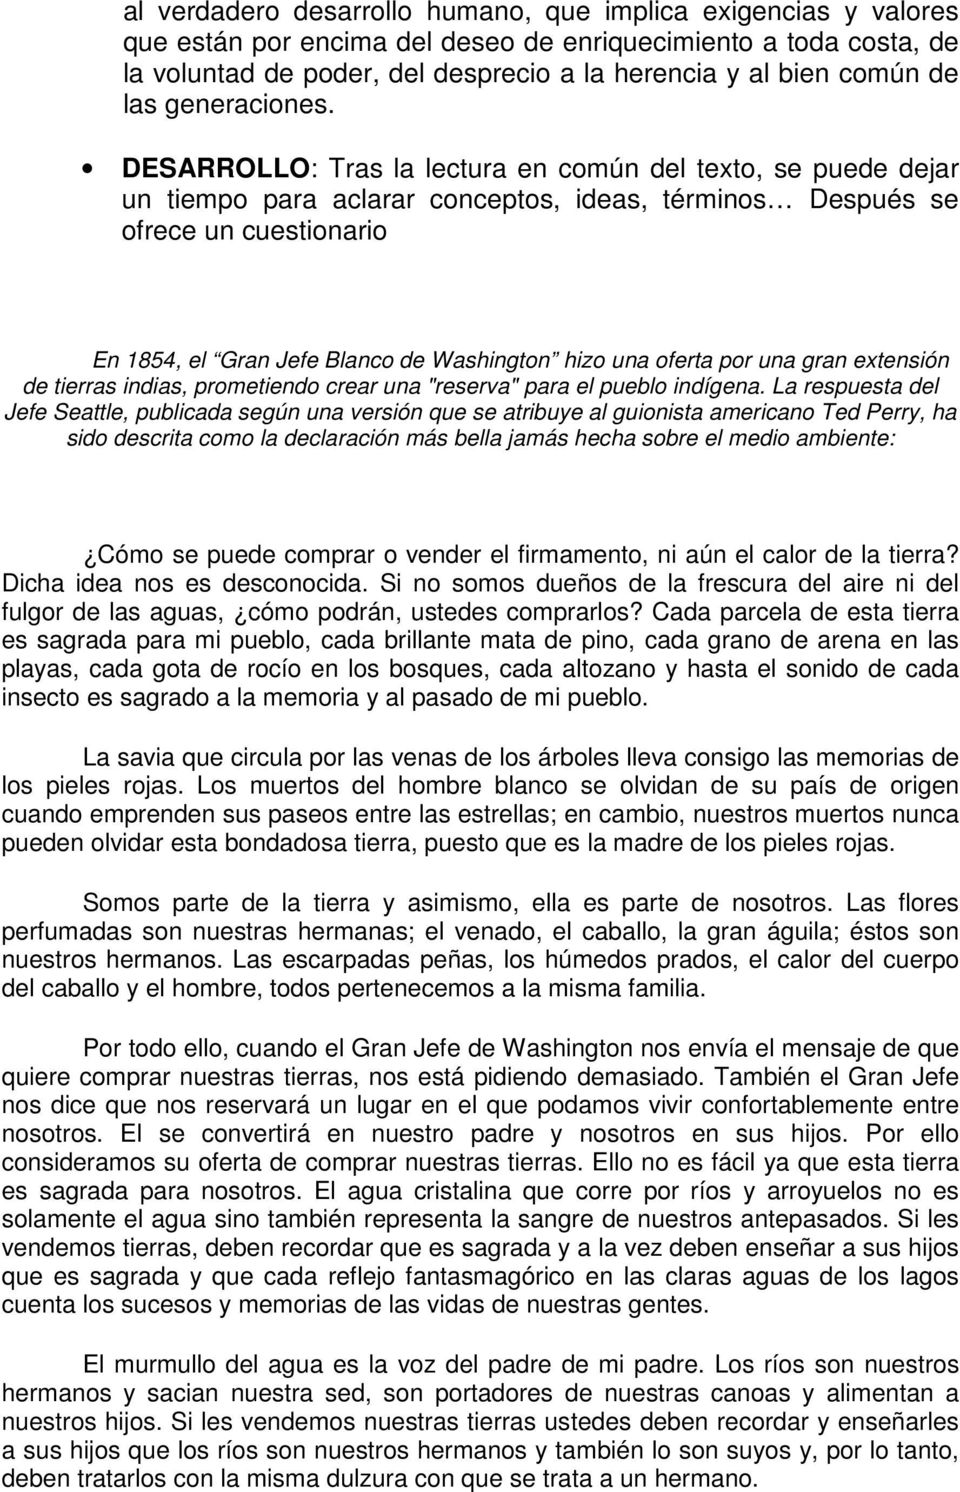 CARTA DEL JEFE INDIO SEATTLE AL PRESIDENTE DE EEUU, FRANKLIN PIERCE ...